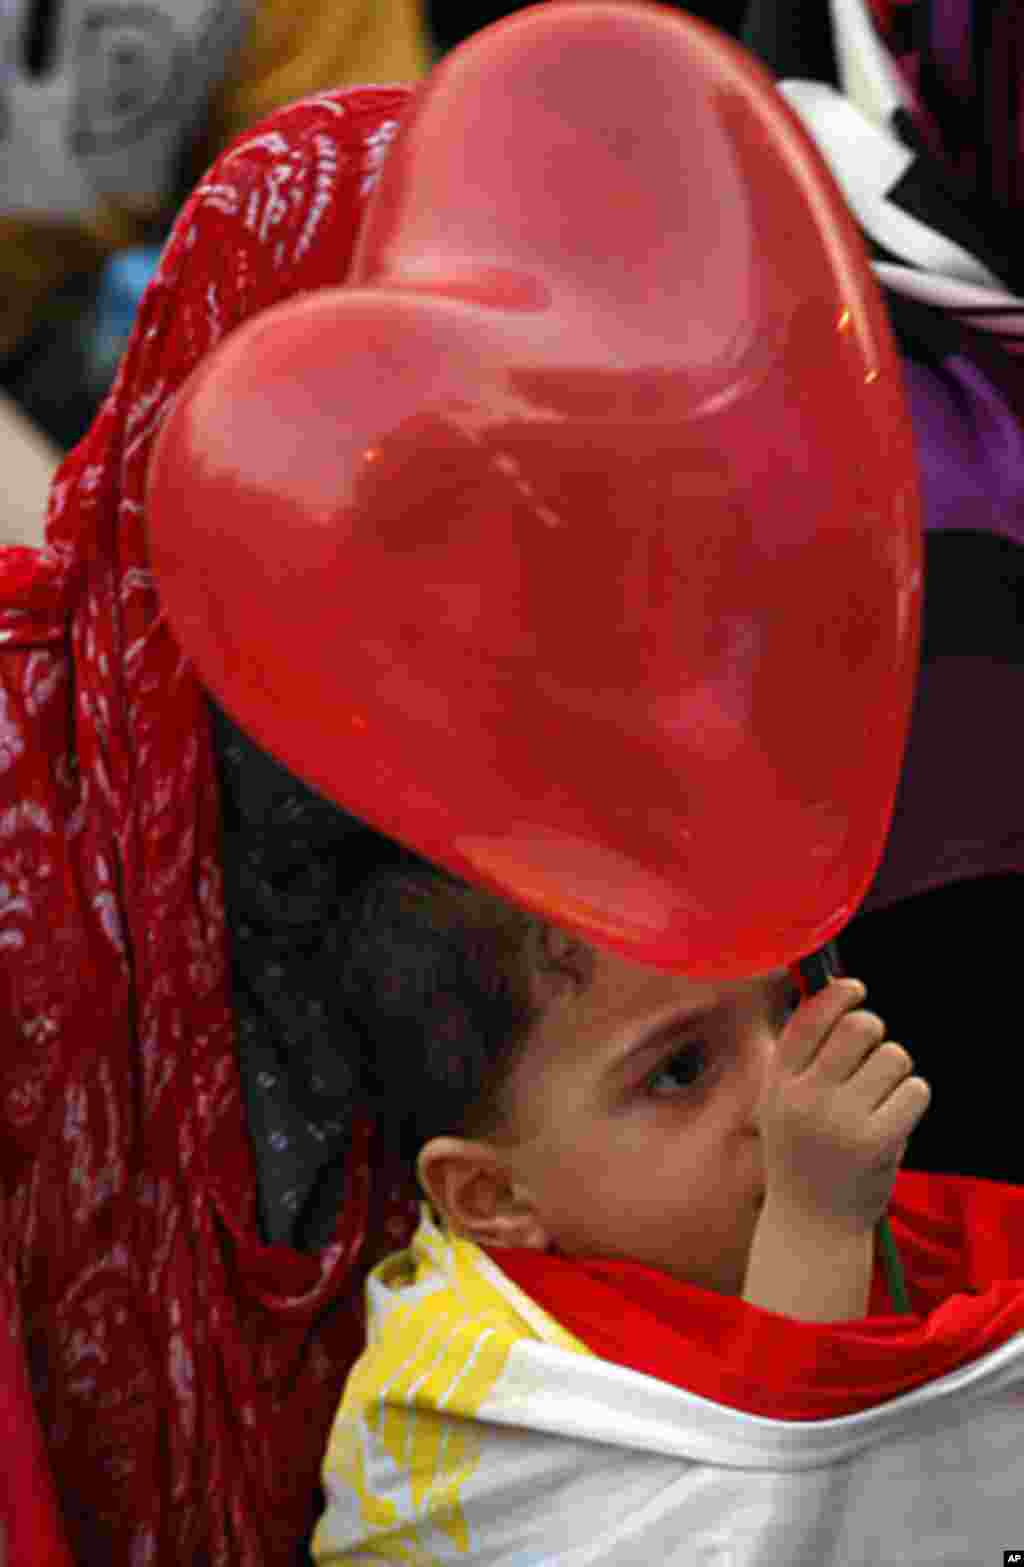 A Muslim boy holds a balloon after Eid al-Fitr prayers marking the end of Ramadan in Tahrir Square in Cairo, Egypt, Aug. 30, 2011. AP